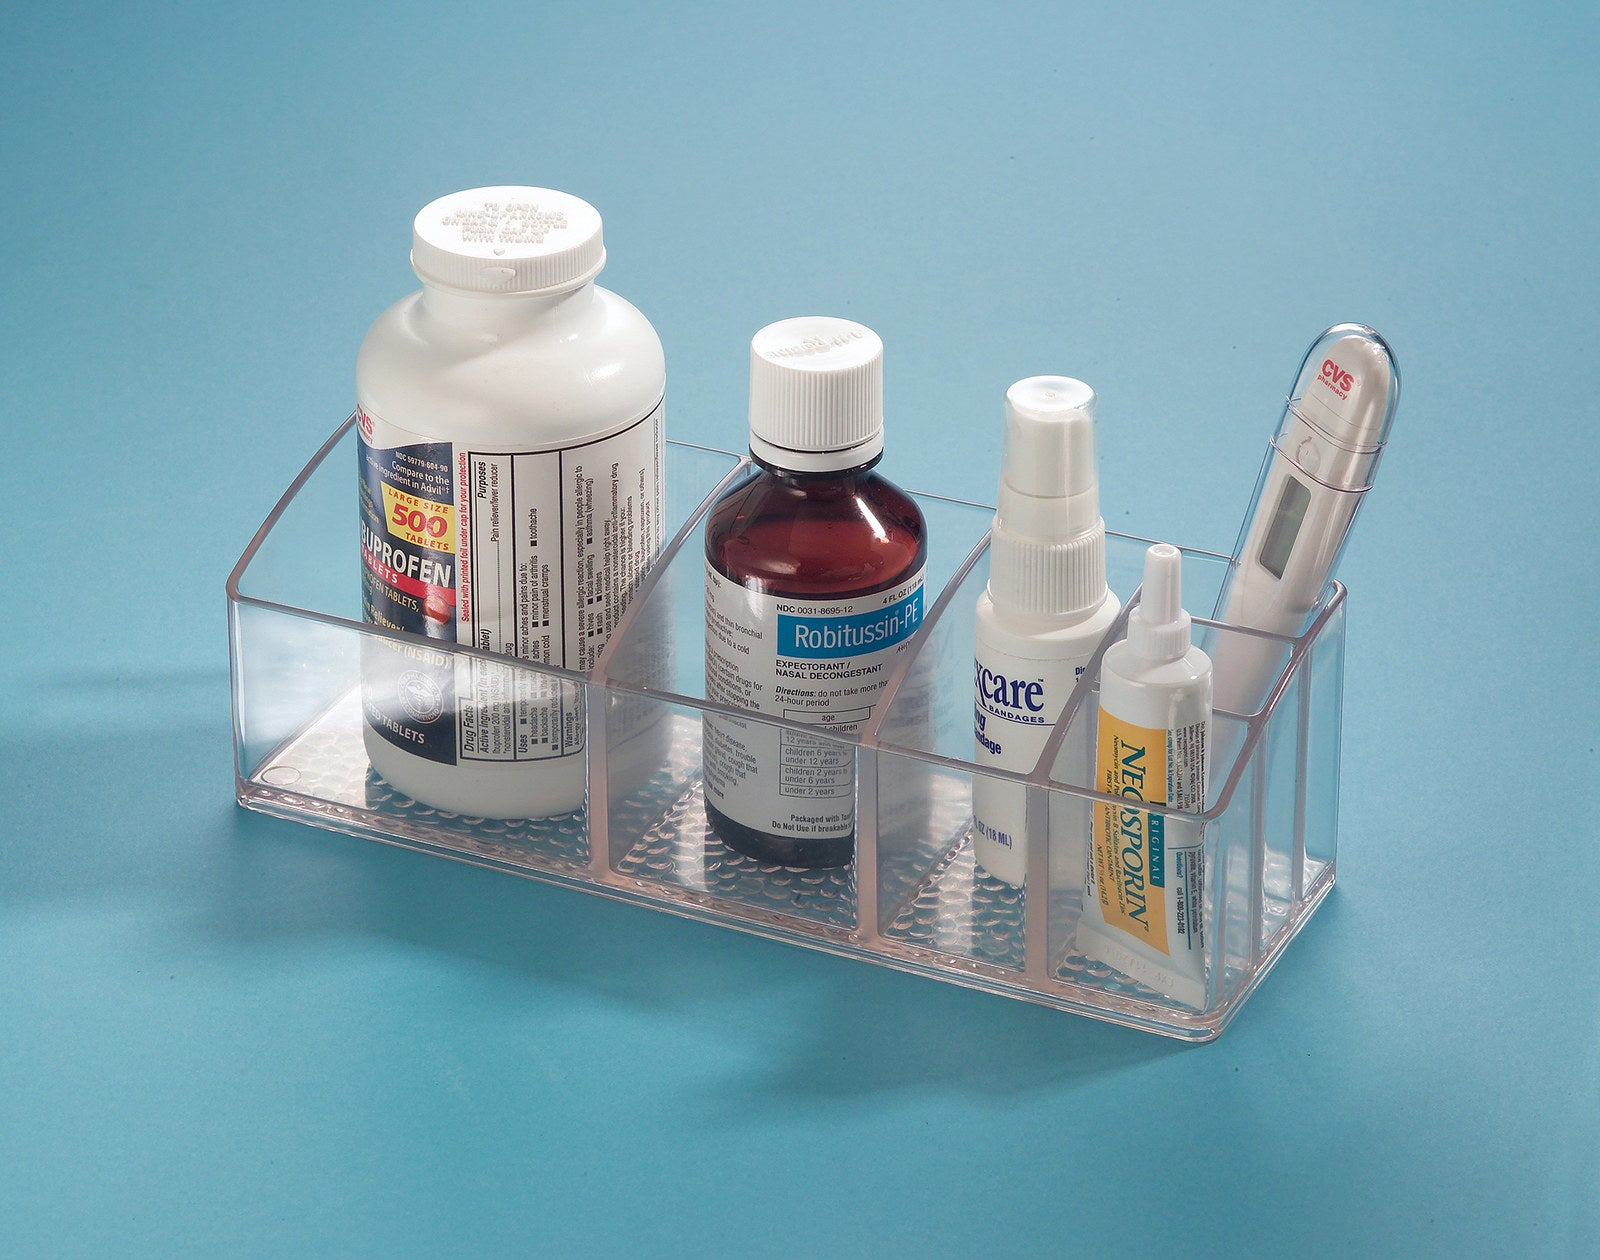 """Having an avalanche of products falling into the sink every time you open the medicine cabinet is NOT fun.Promising review: """"Was looking for an inexpensive way to organize makeup brushes and other smaller makeup items. This worked out great! Fits nicely on the countertop, and you can also fit it in a bathroom cabinet. Thick and sturdy material."""" —ShopGirl1657Price: $8.57"""